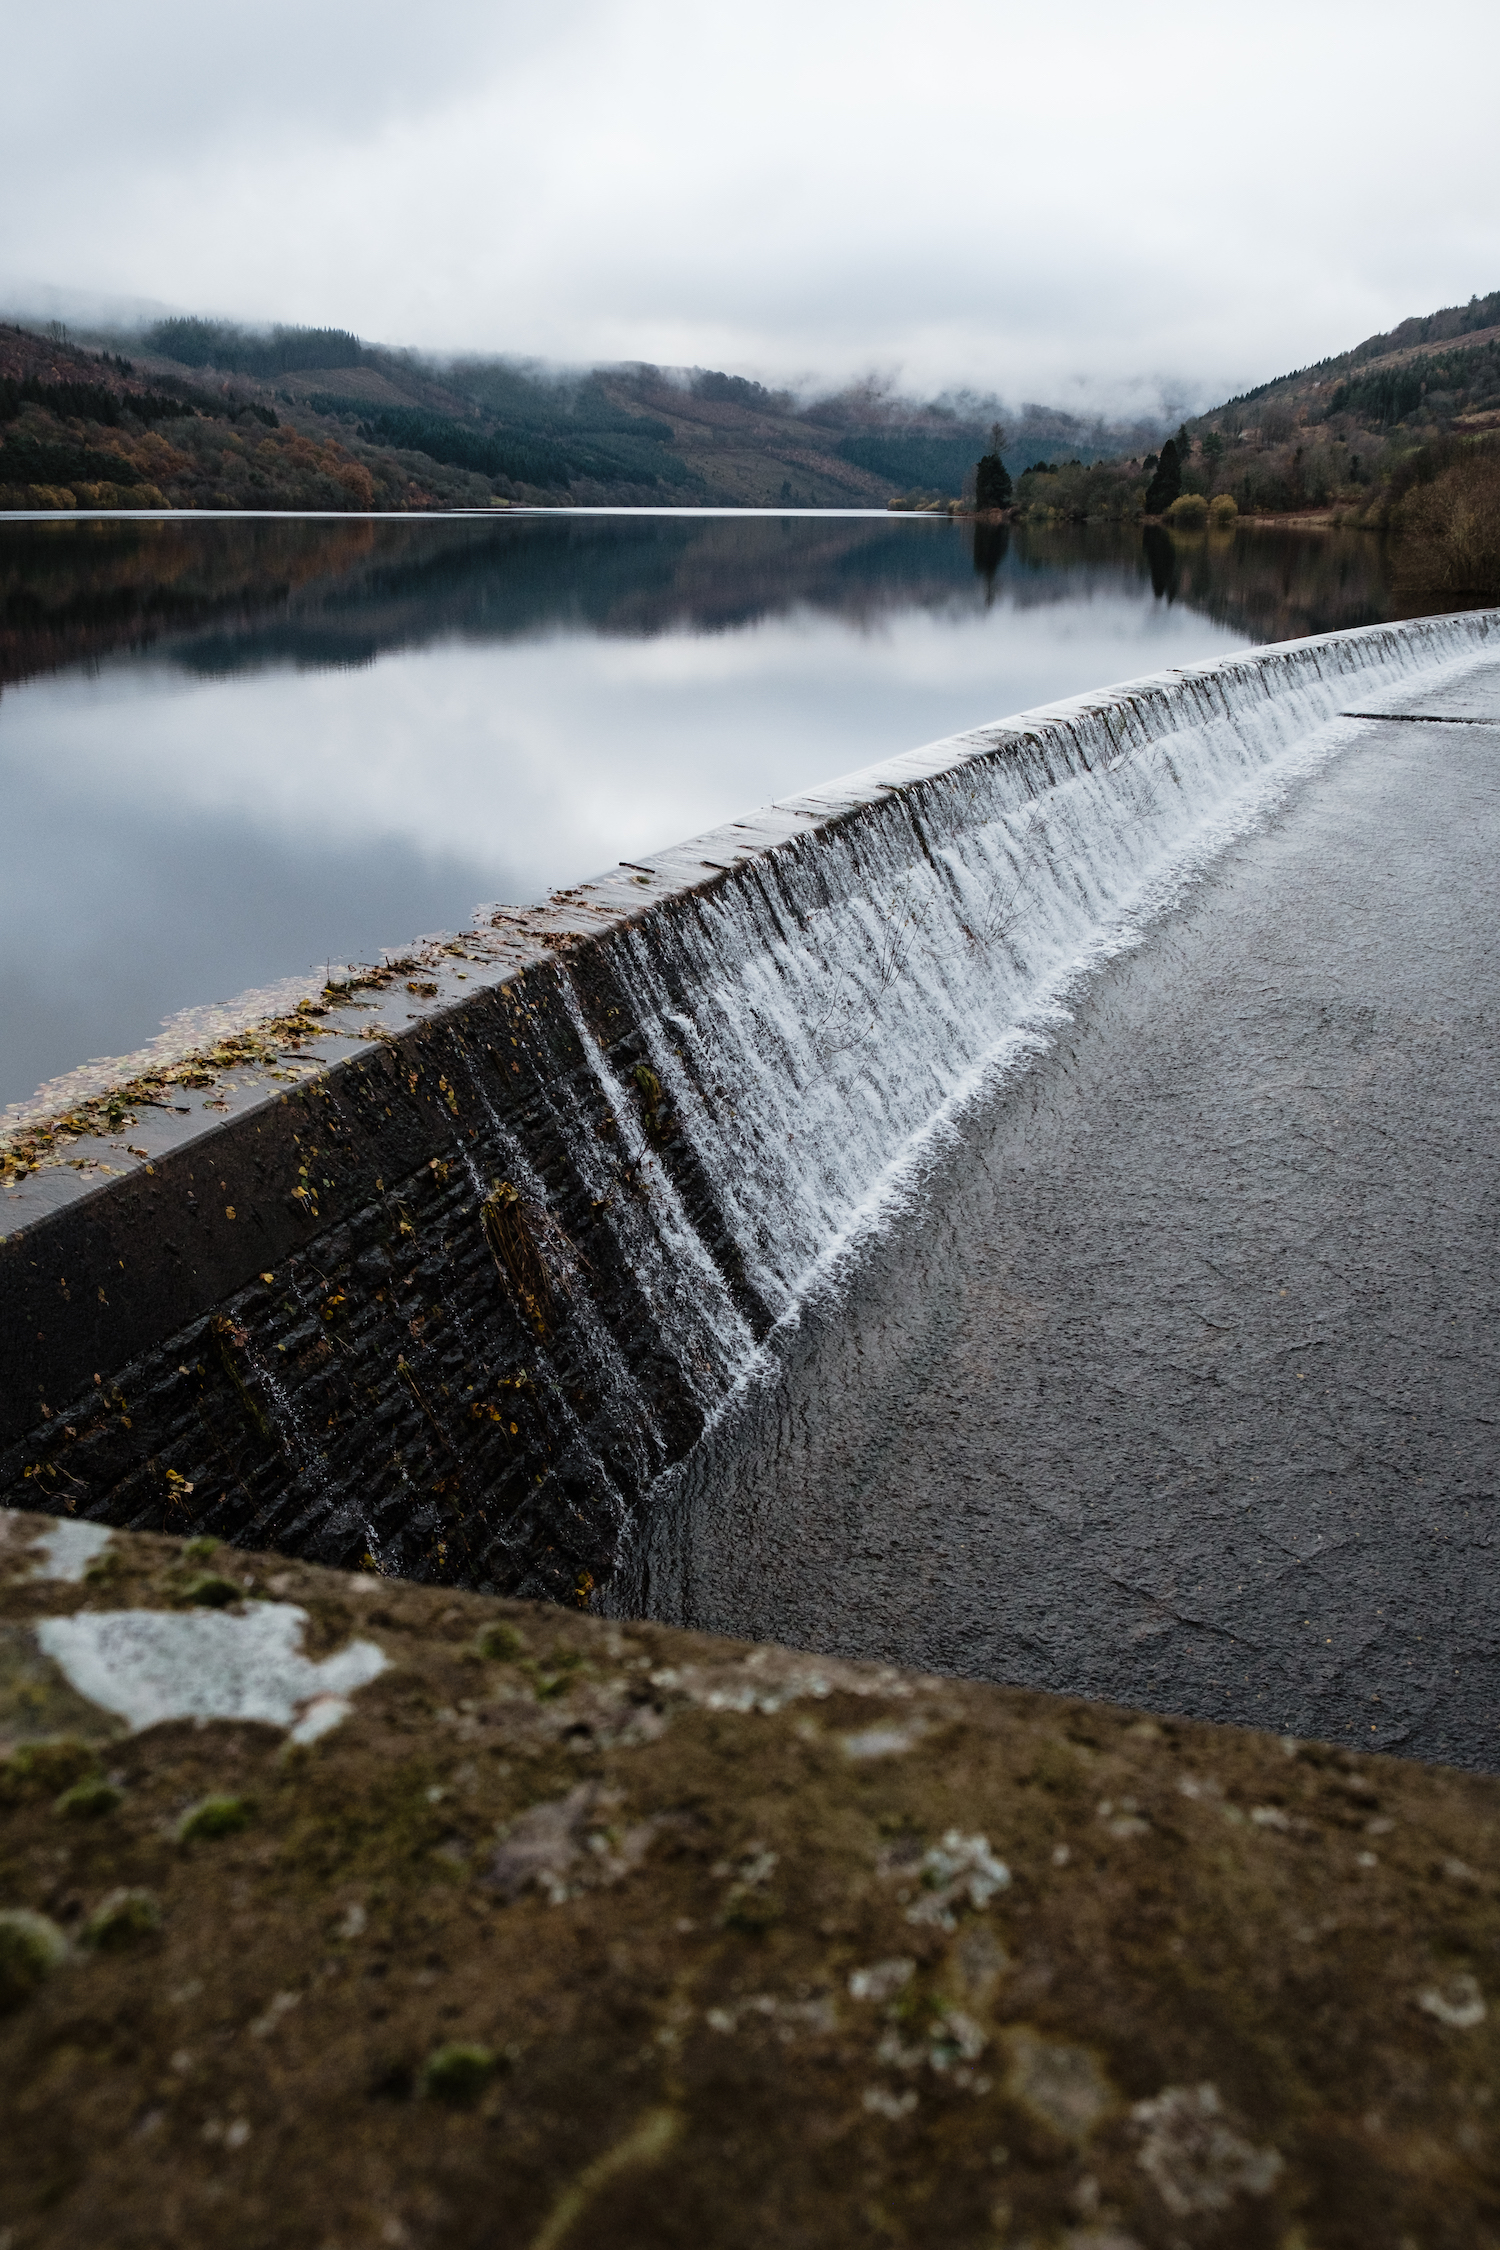 Talybont Reservoir, Brecon Beacons, Wales, UK - Travel Photography by Ben Holbrook from DriftwoodJournals.com-6683 2